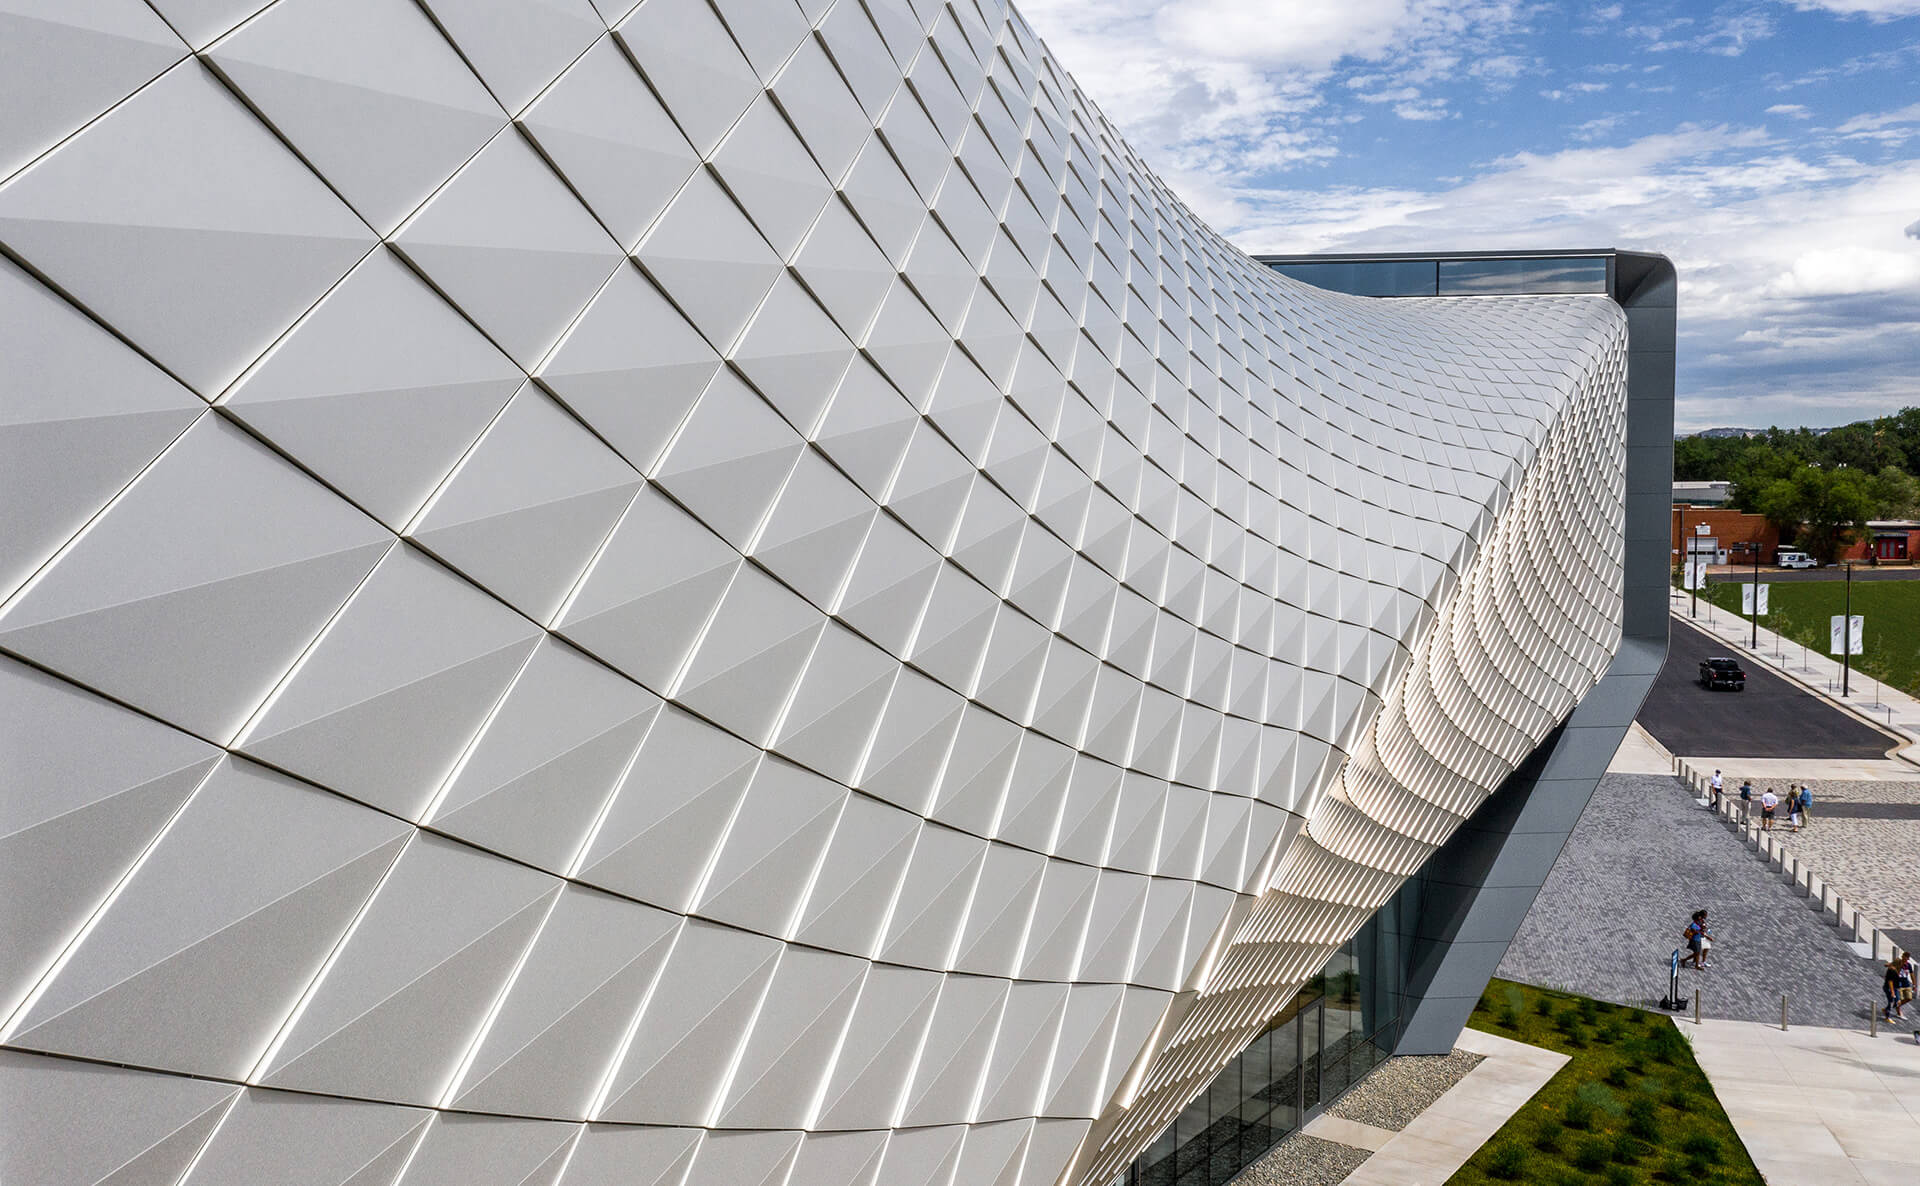 The façade of the USOP Museum with anodised aluminium panels tilted by 1 degree at the corners to give it a scale-like appearance | United States Olympic and Paralympic Museum | Diller Scofidio + Renfro | STIRworld